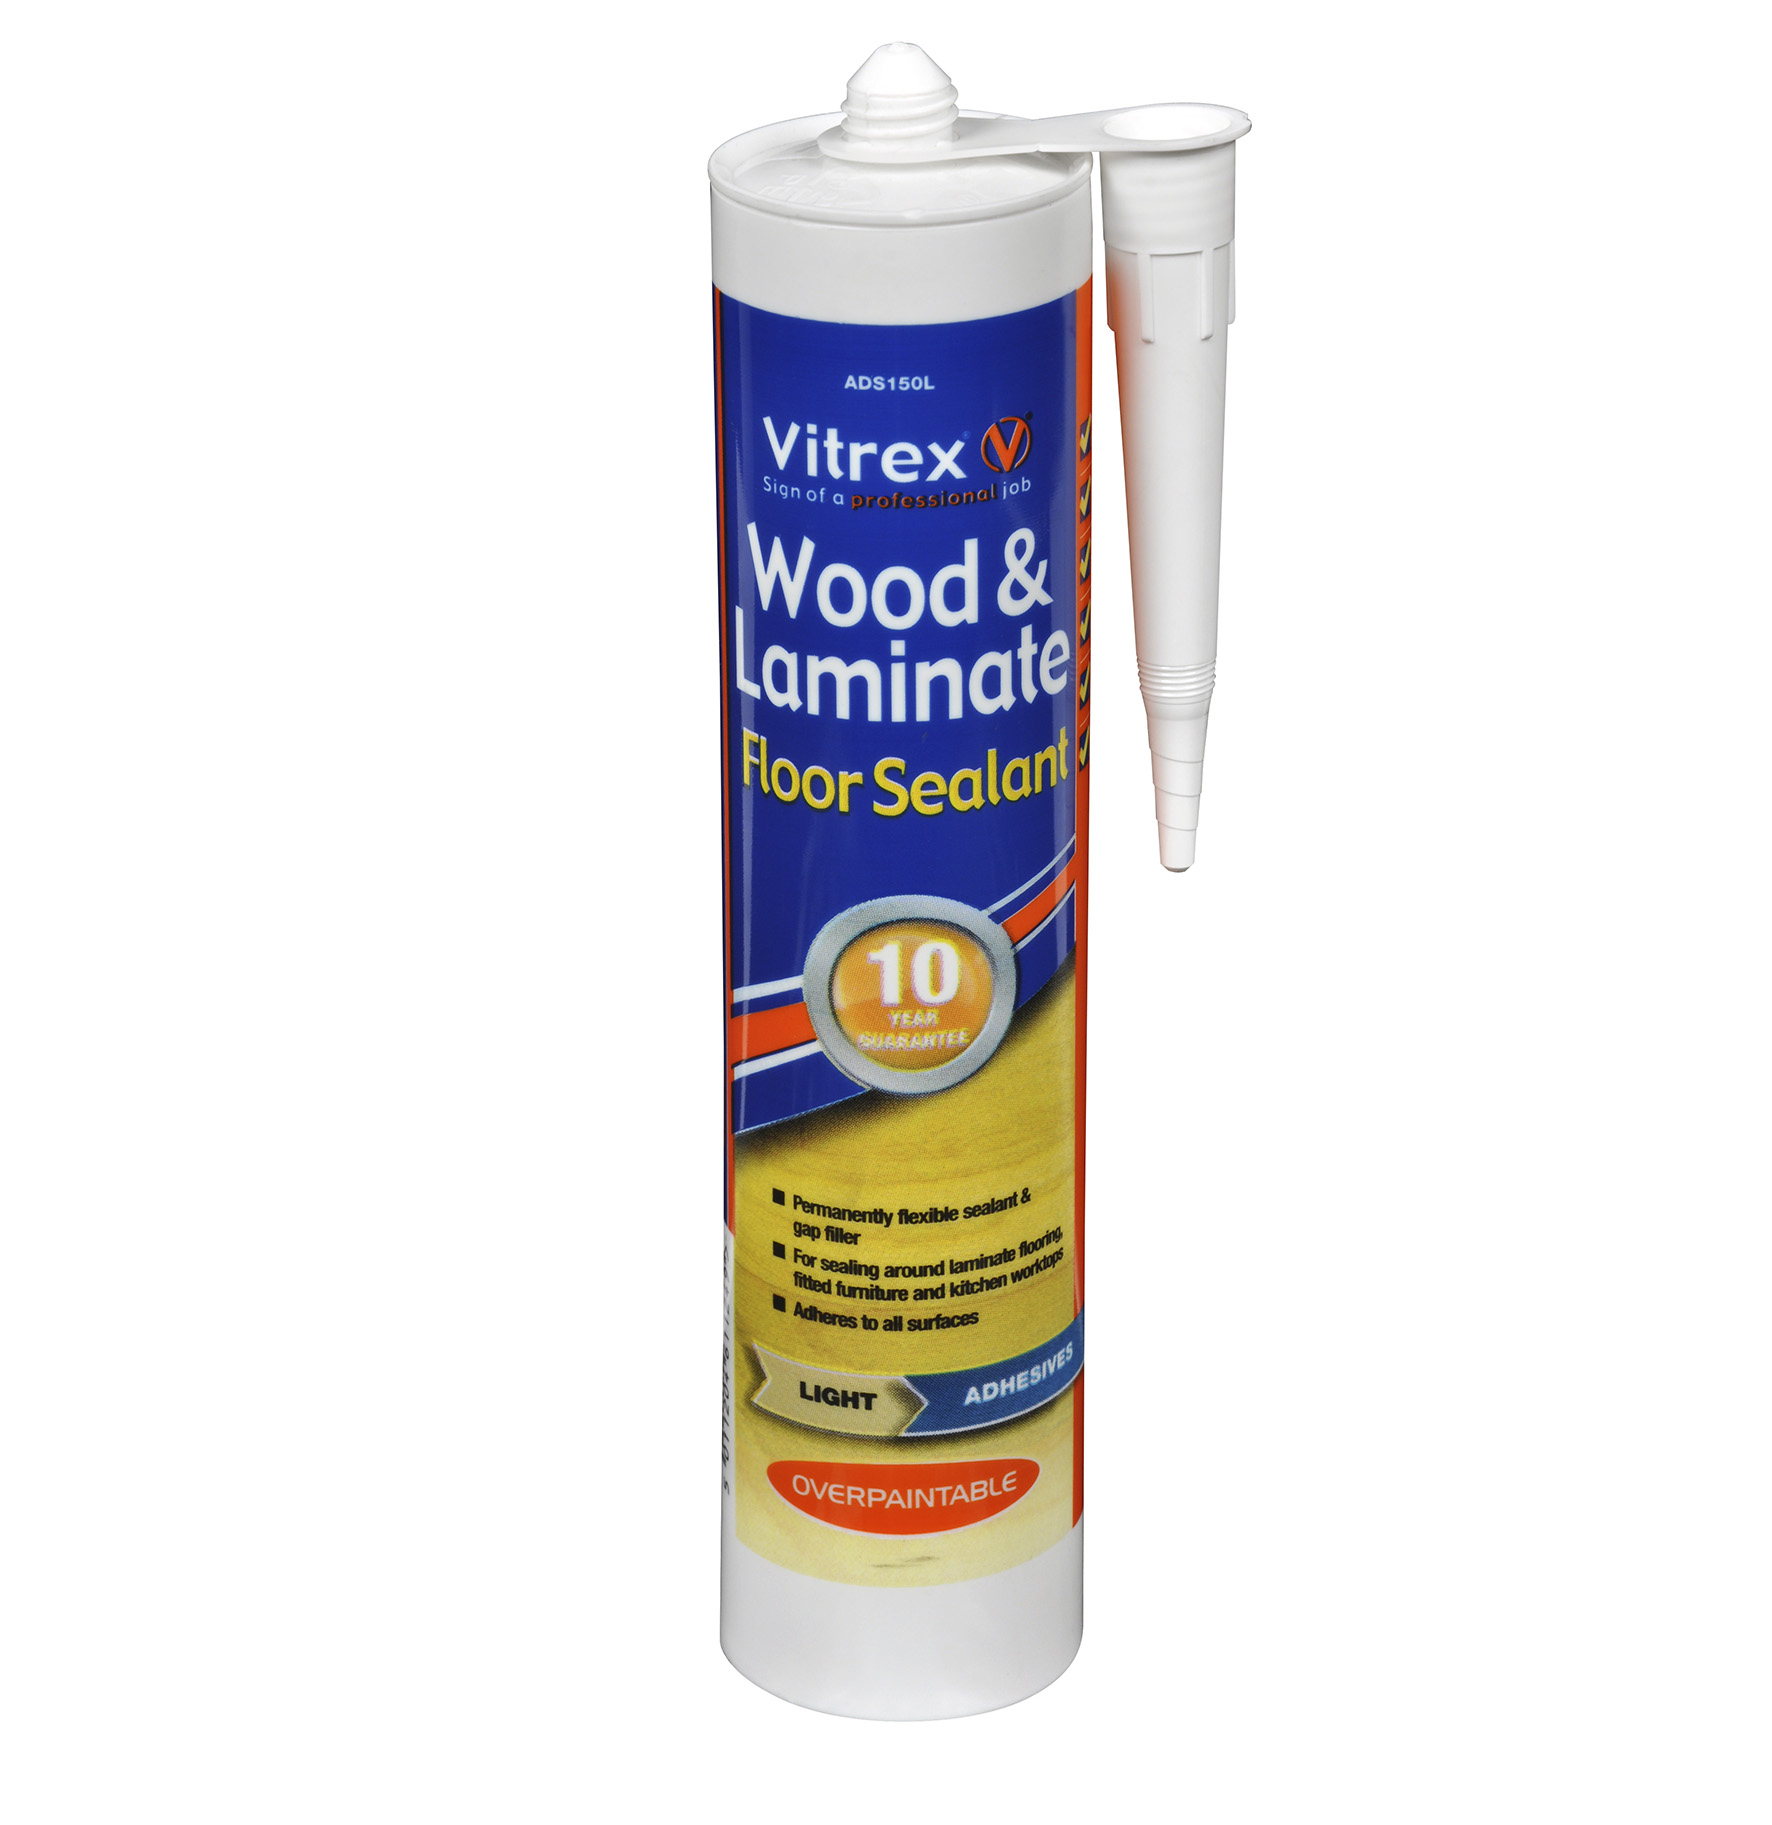 Wood & Laminate Floor Sealant - Light